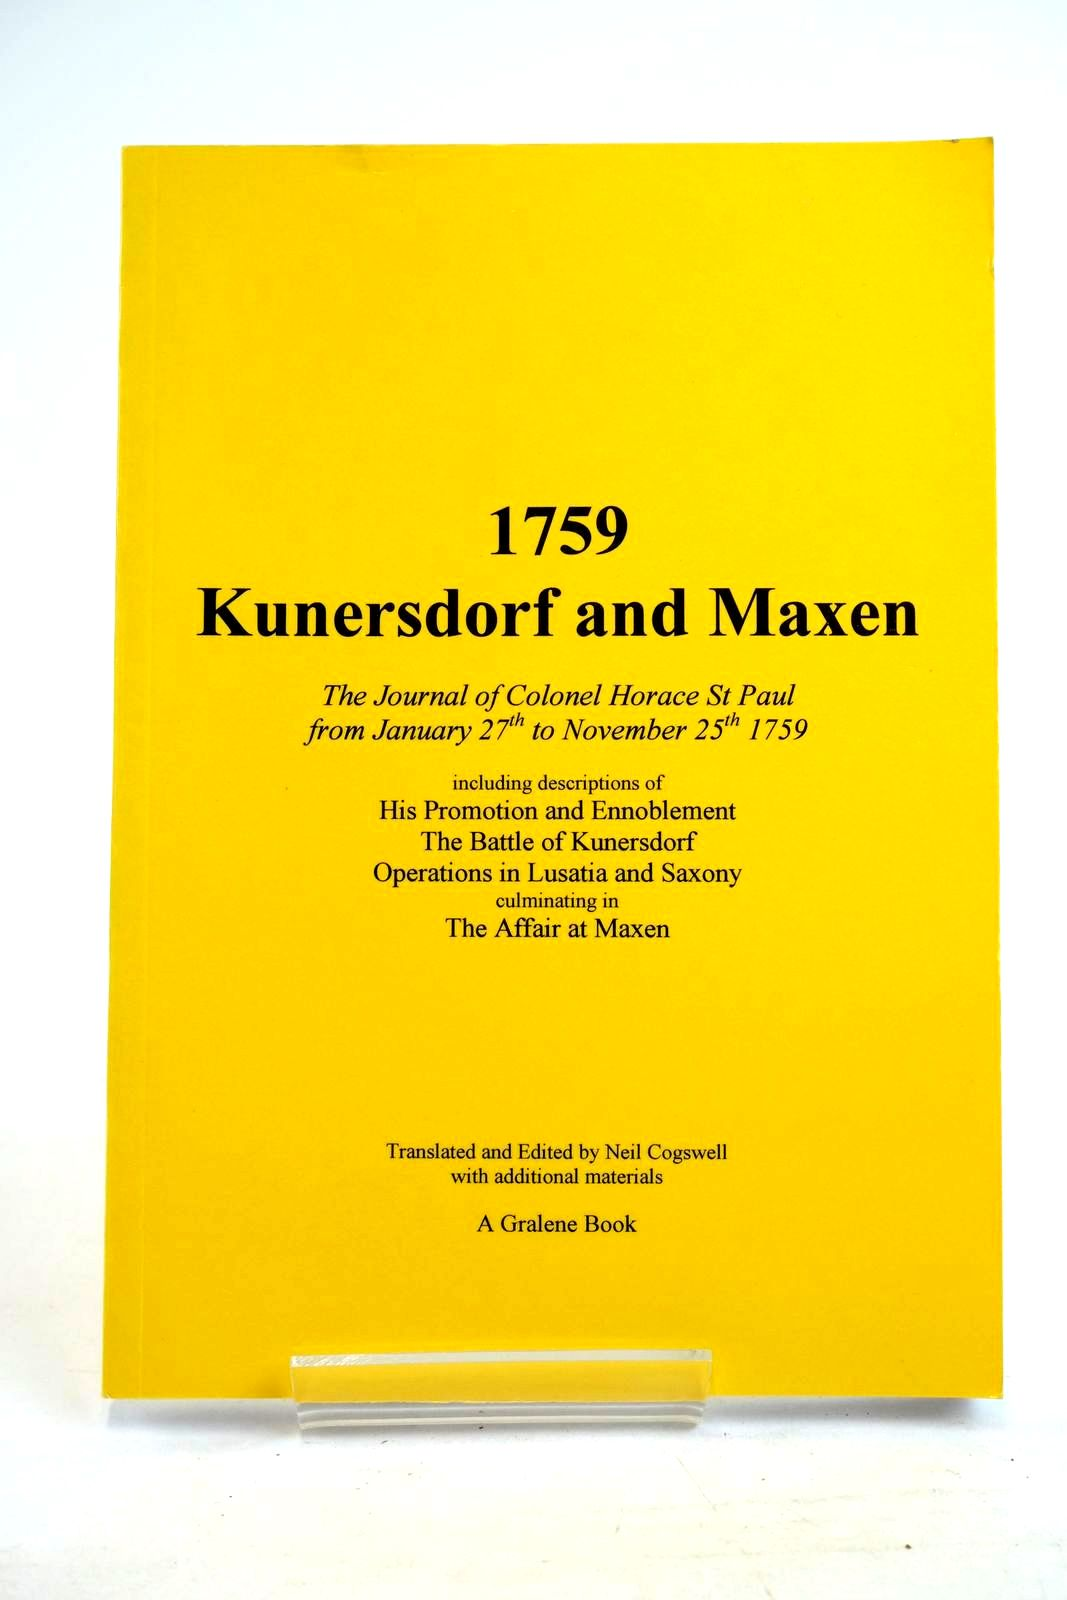 Photo of 1759 KUNERSDORF AND MAXEN written by St Paul, Horace published by Gralene Books (STOCK CODE: 1320197)  for sale by Stella & Rose's Books